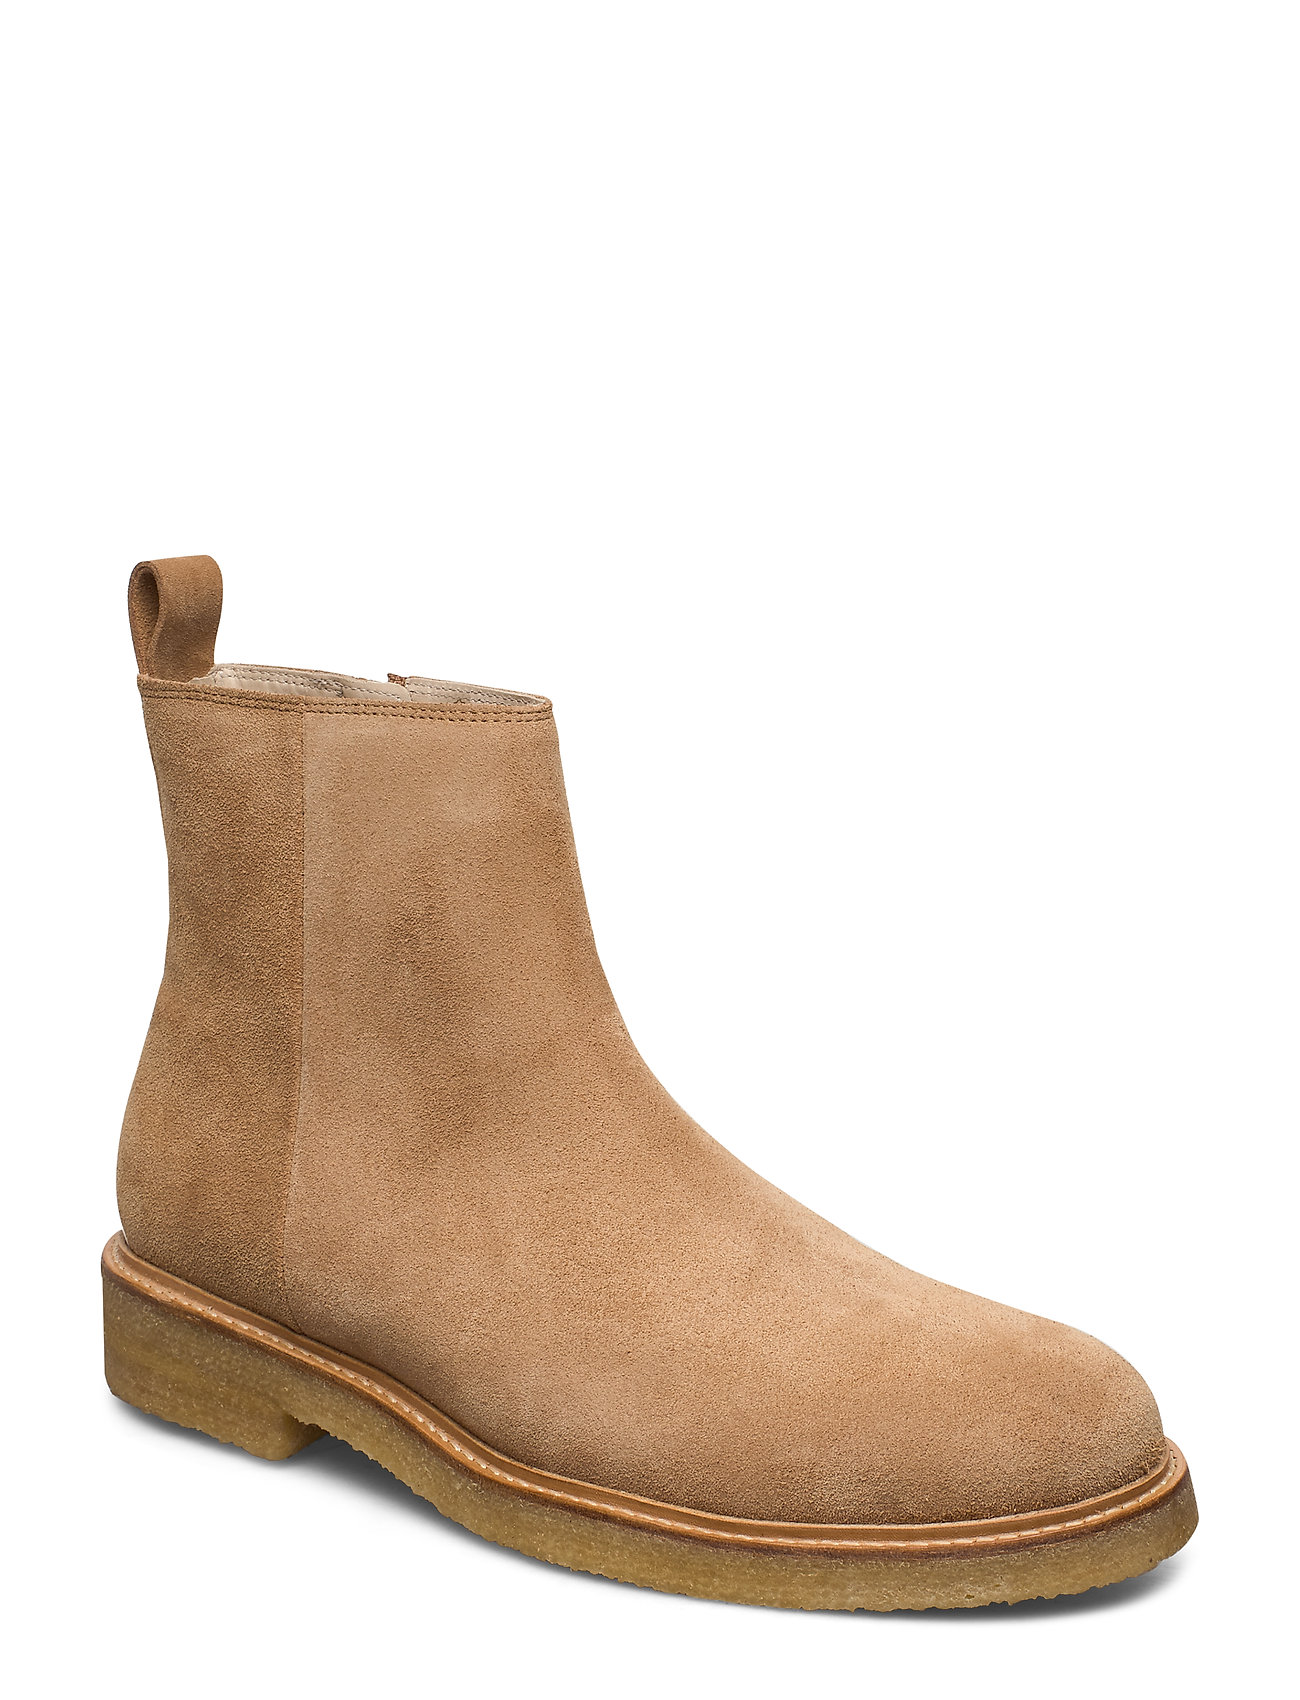 Image of Bond Crepe Suede Ankle Boot Støvlet Chelsea Boot Brun Royal RepubliQ (3346638035)